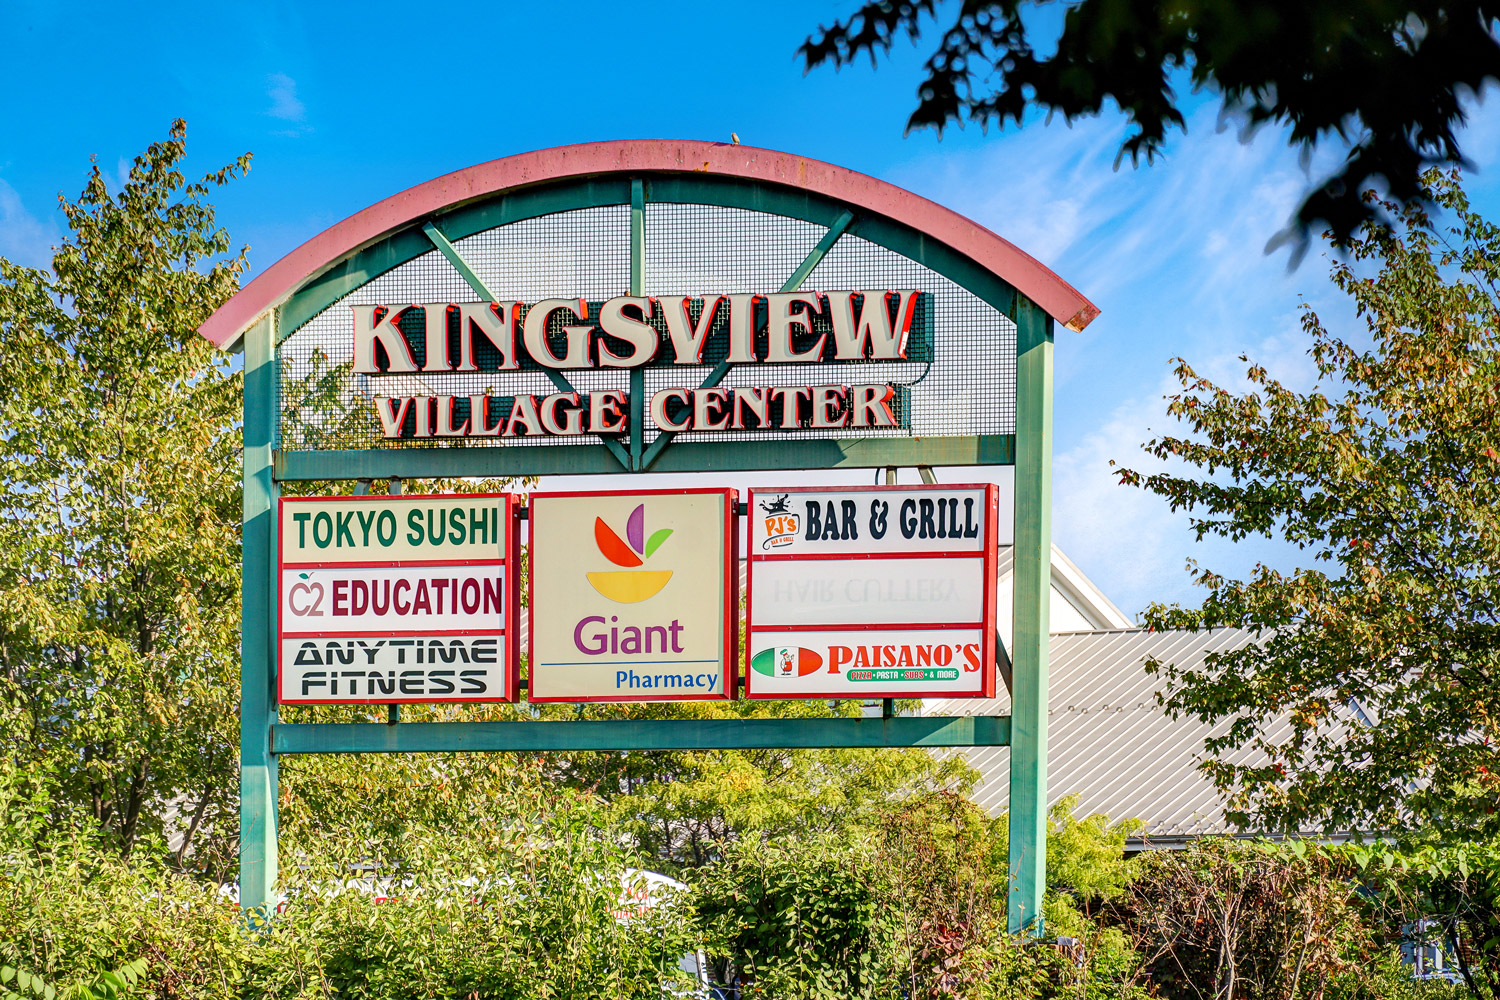 Kingsview Village Center is 2 minutes from Seneca Club Apartments in Germantown, MD